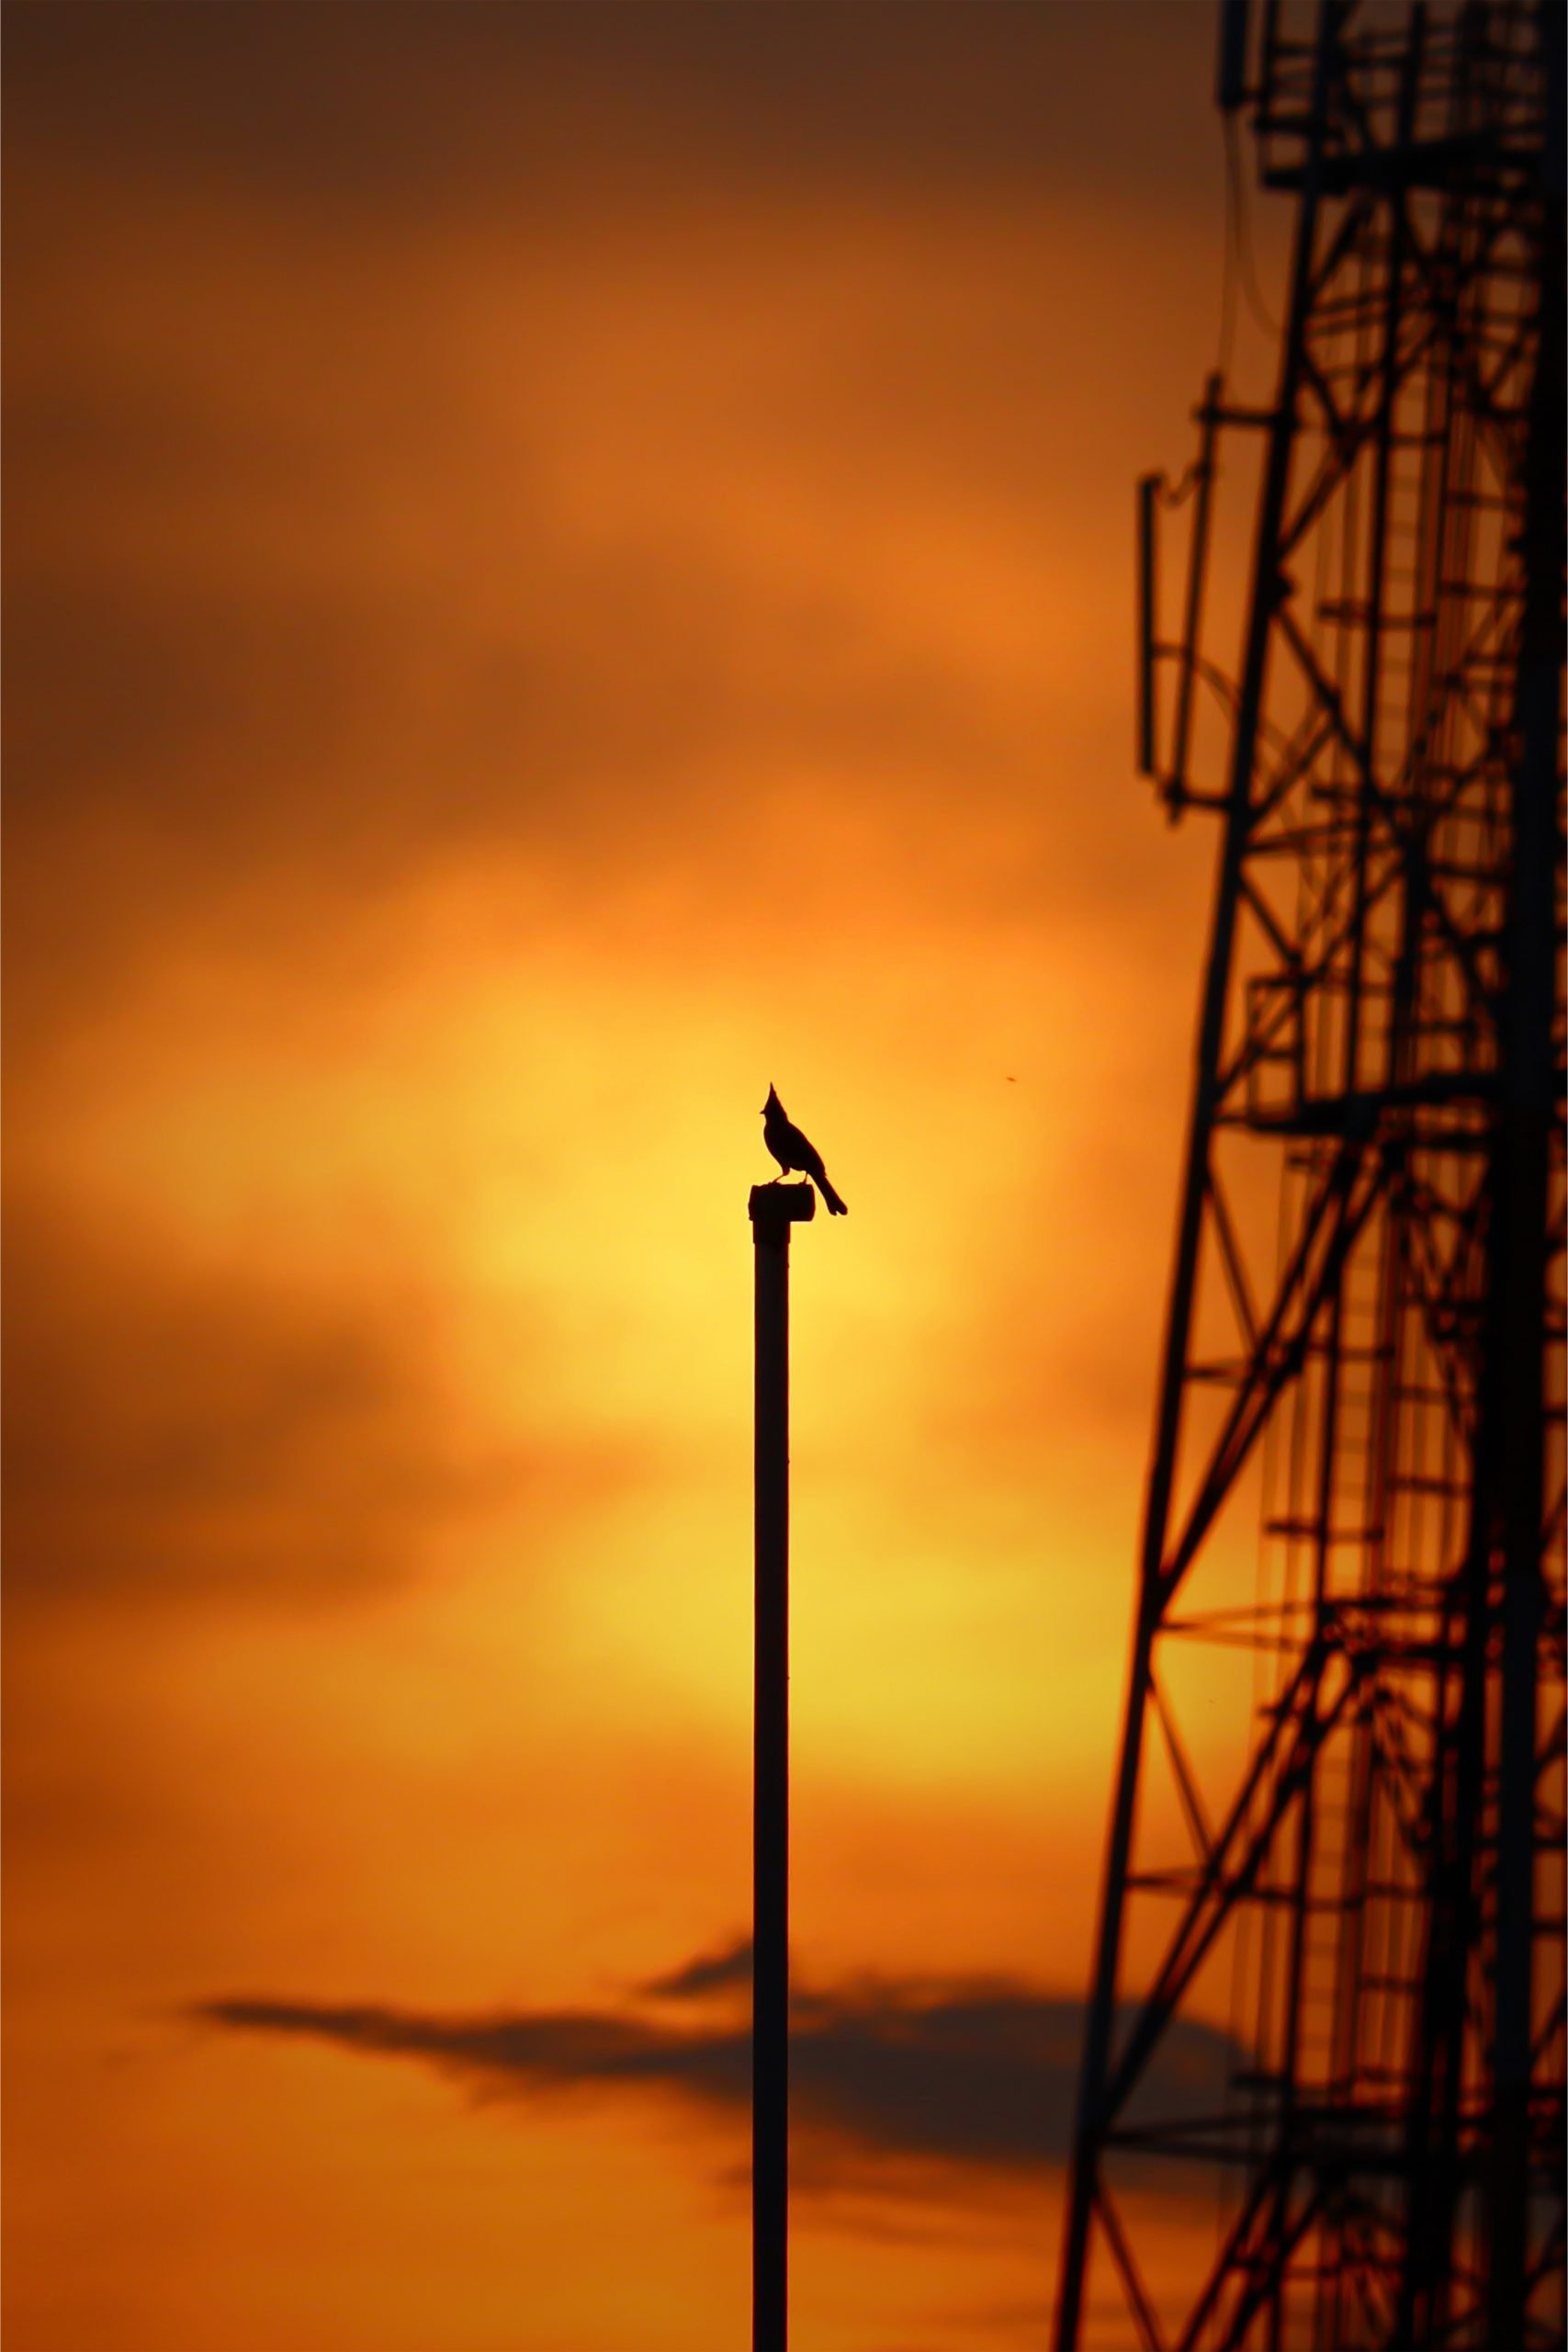 A bird on a pole